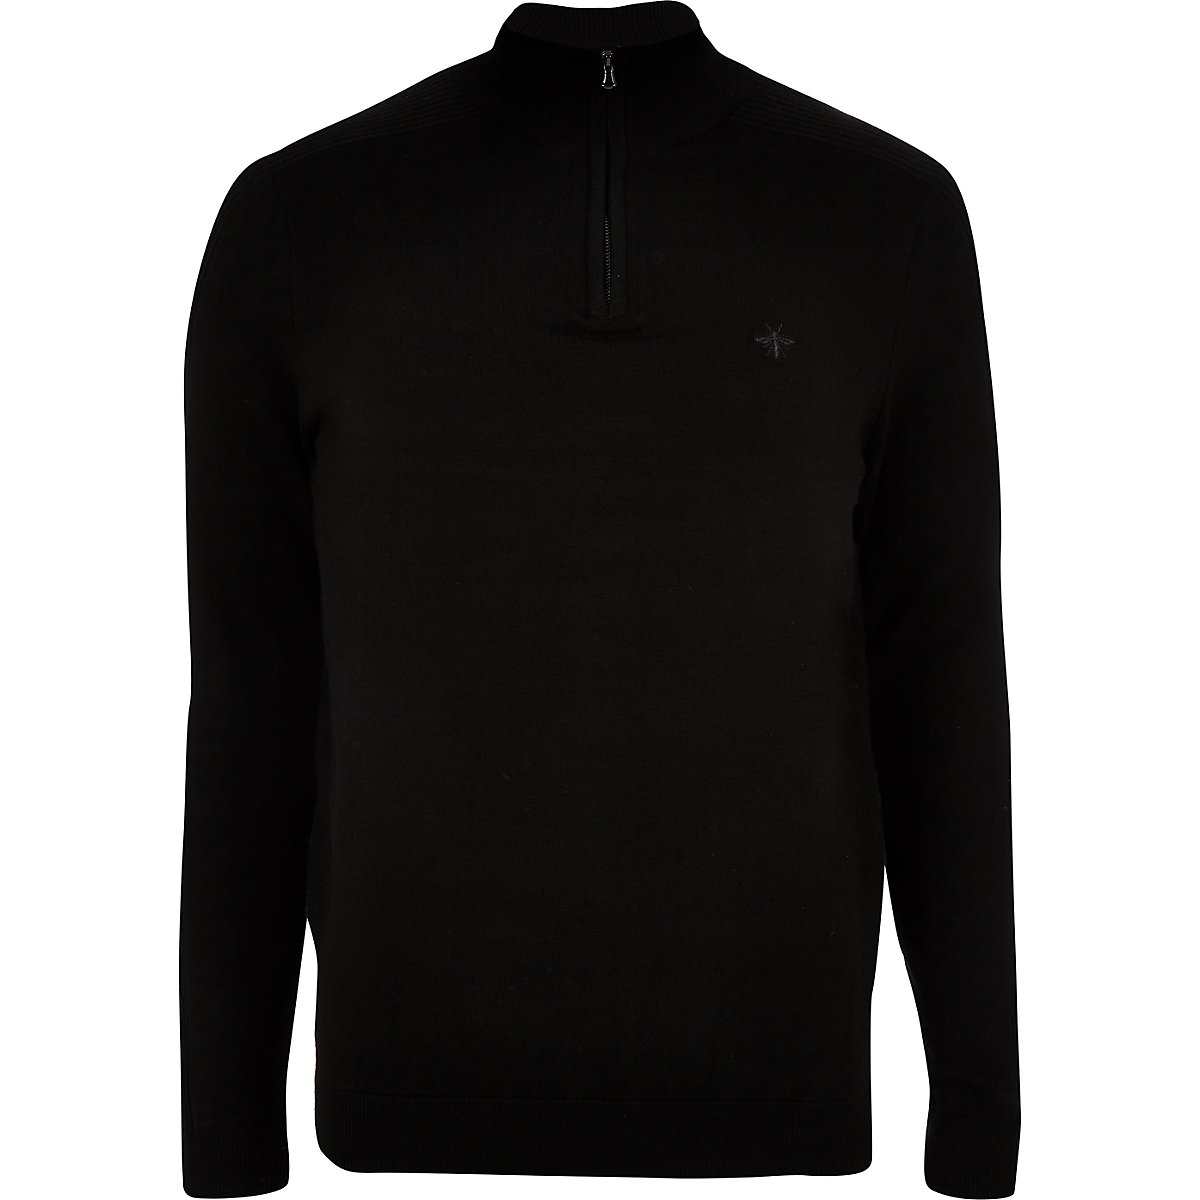 Black zip-up slim fit funnel neck sweater